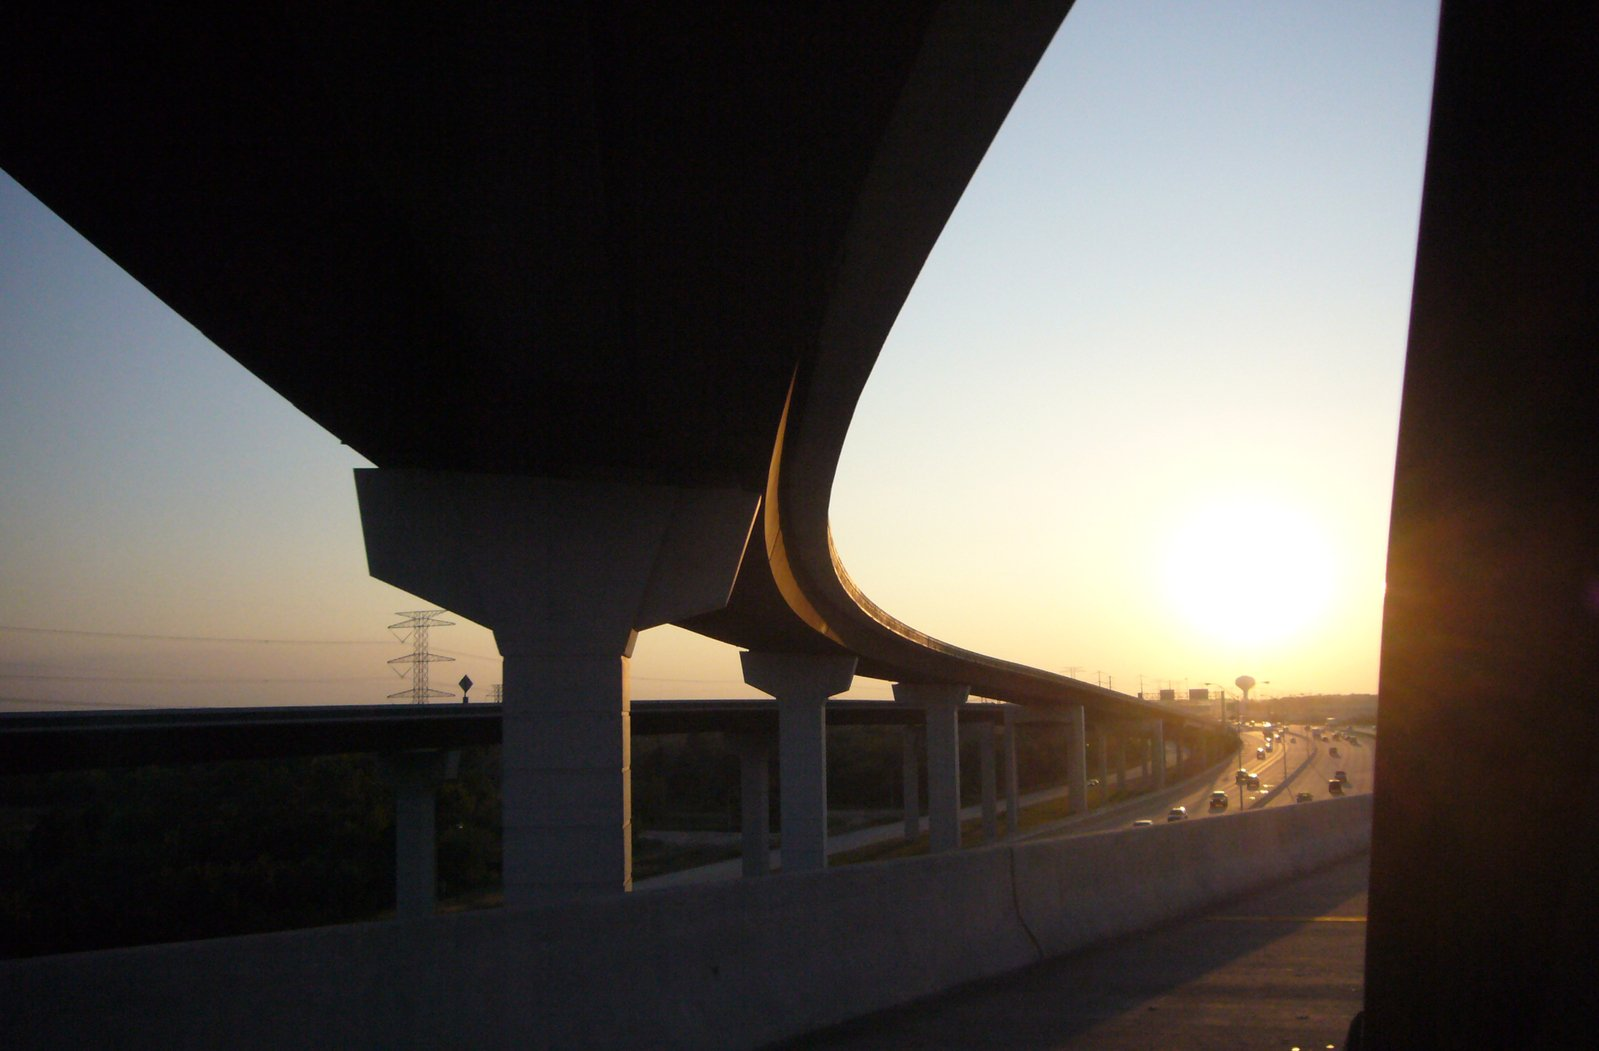 On the Highway, with the sunset out